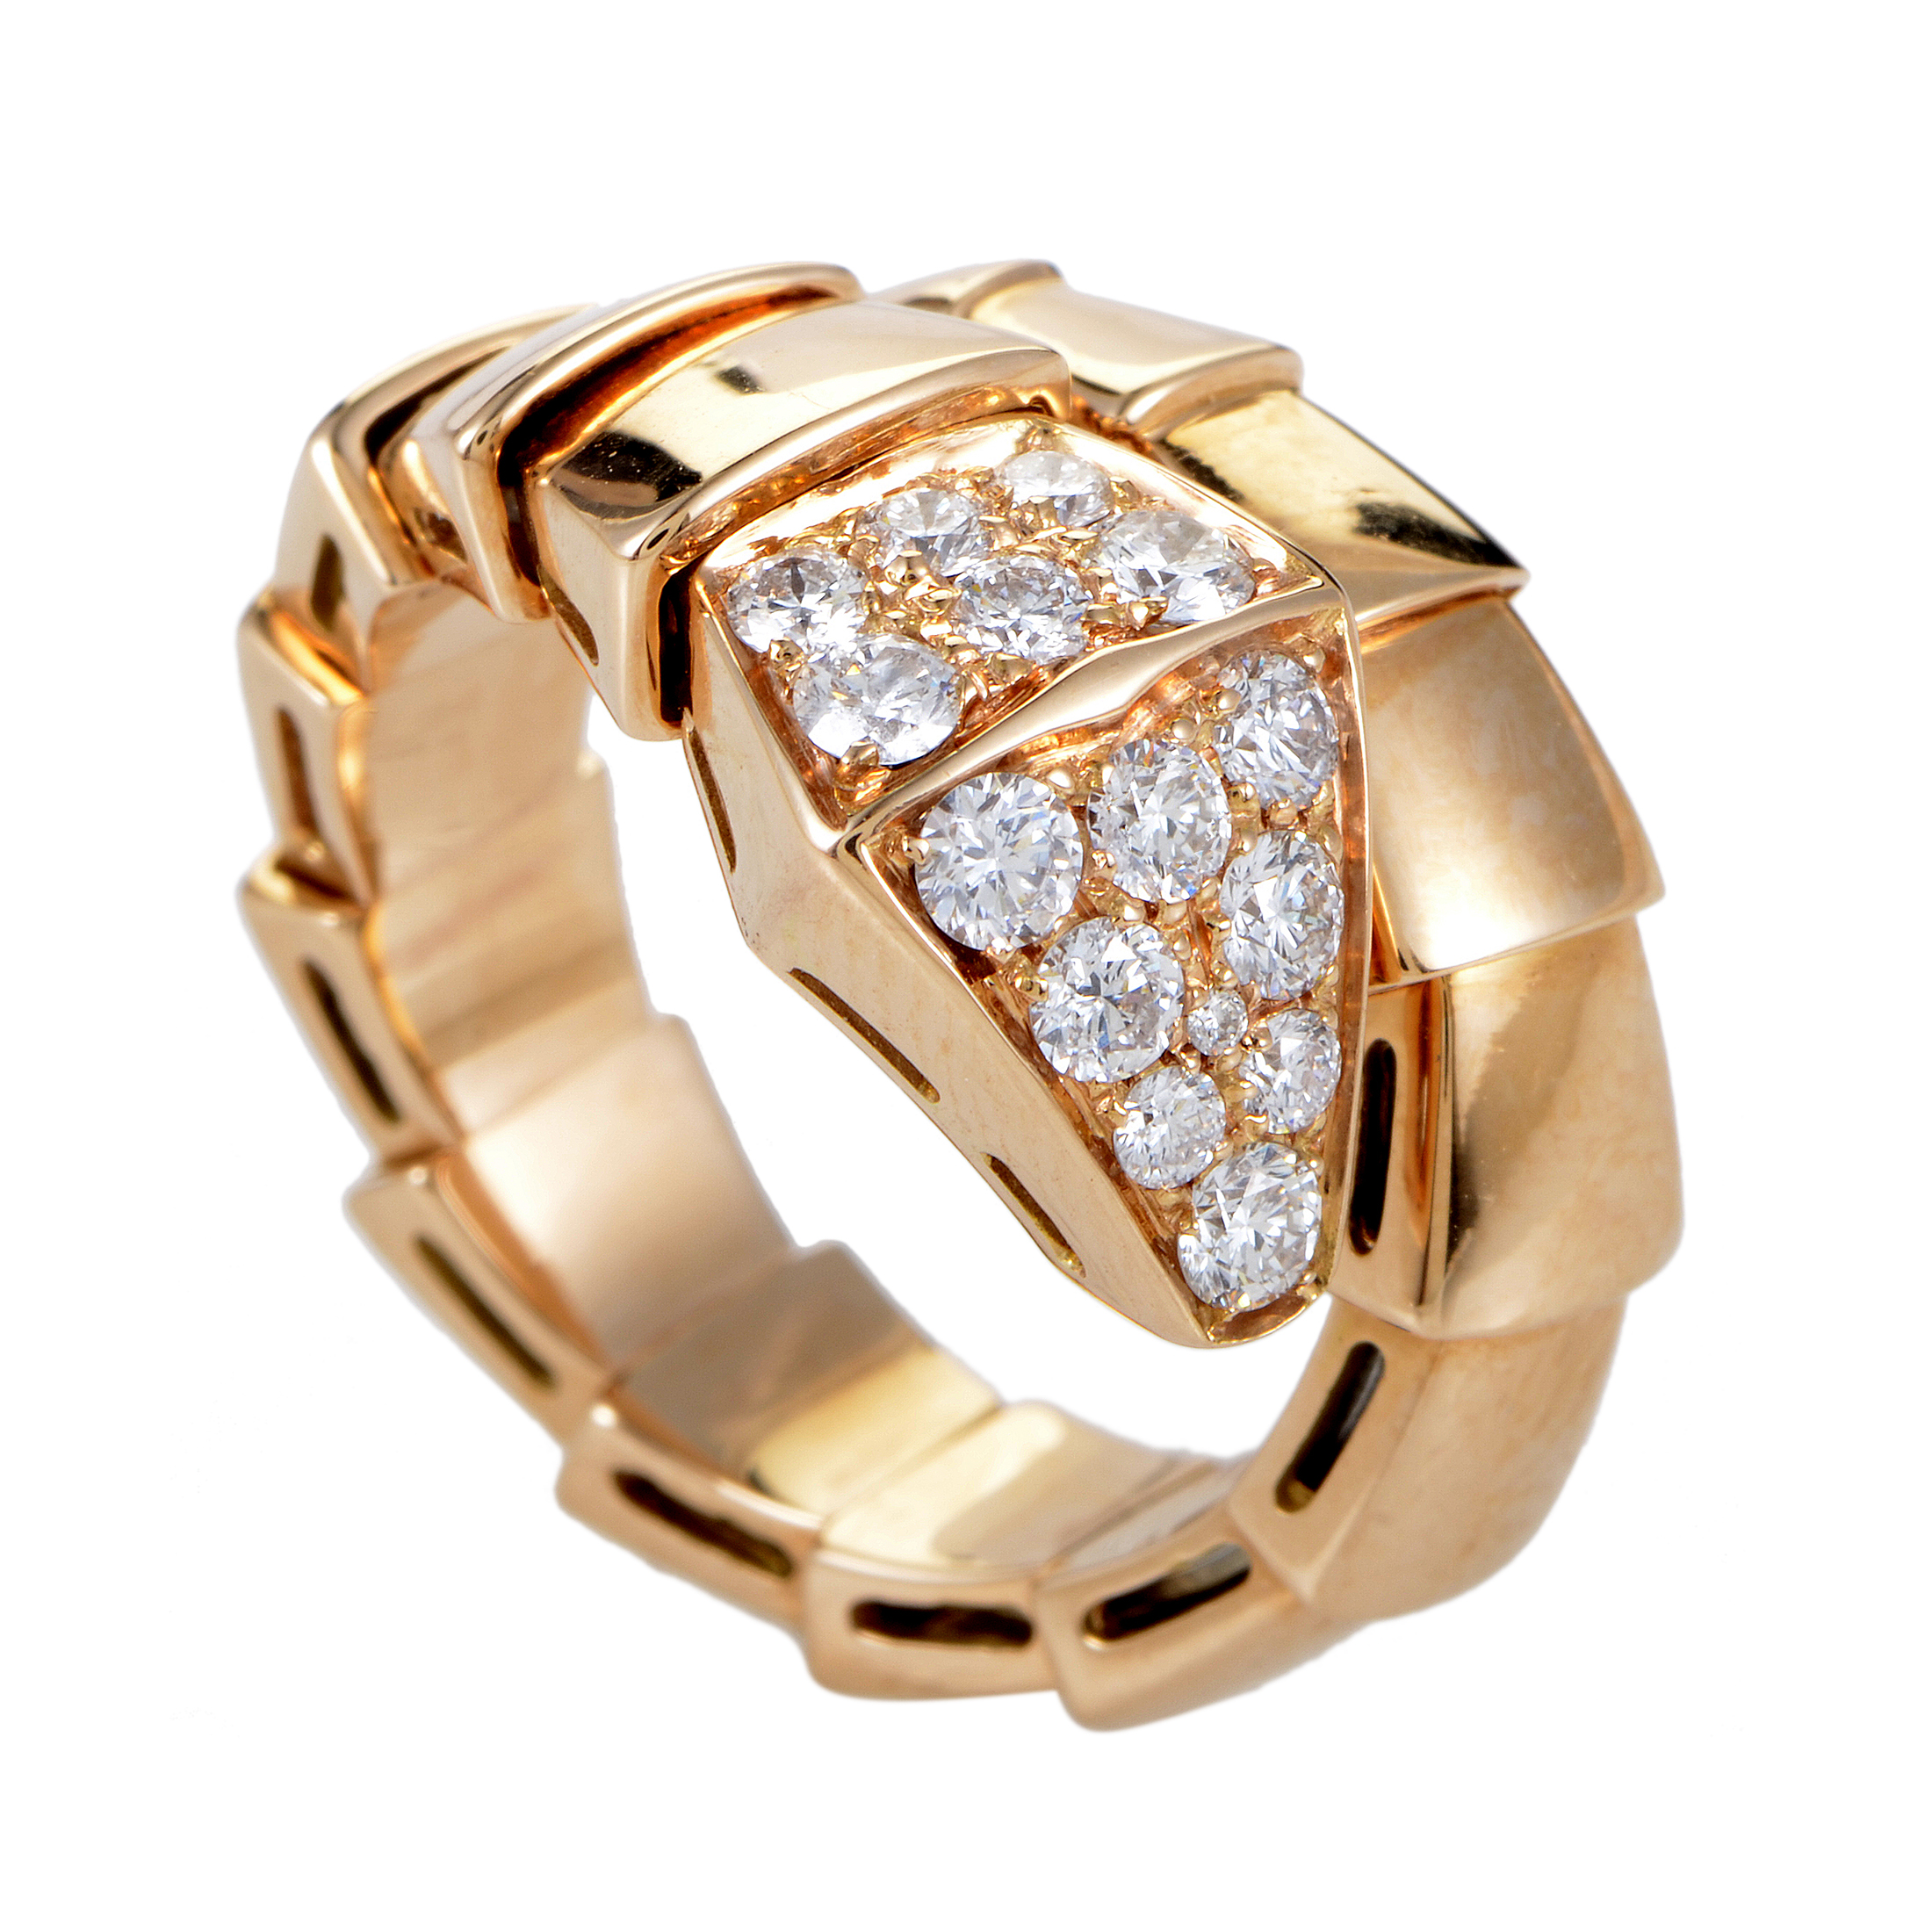 Serpenti Women's 18K Rose Gold Diamond Ring